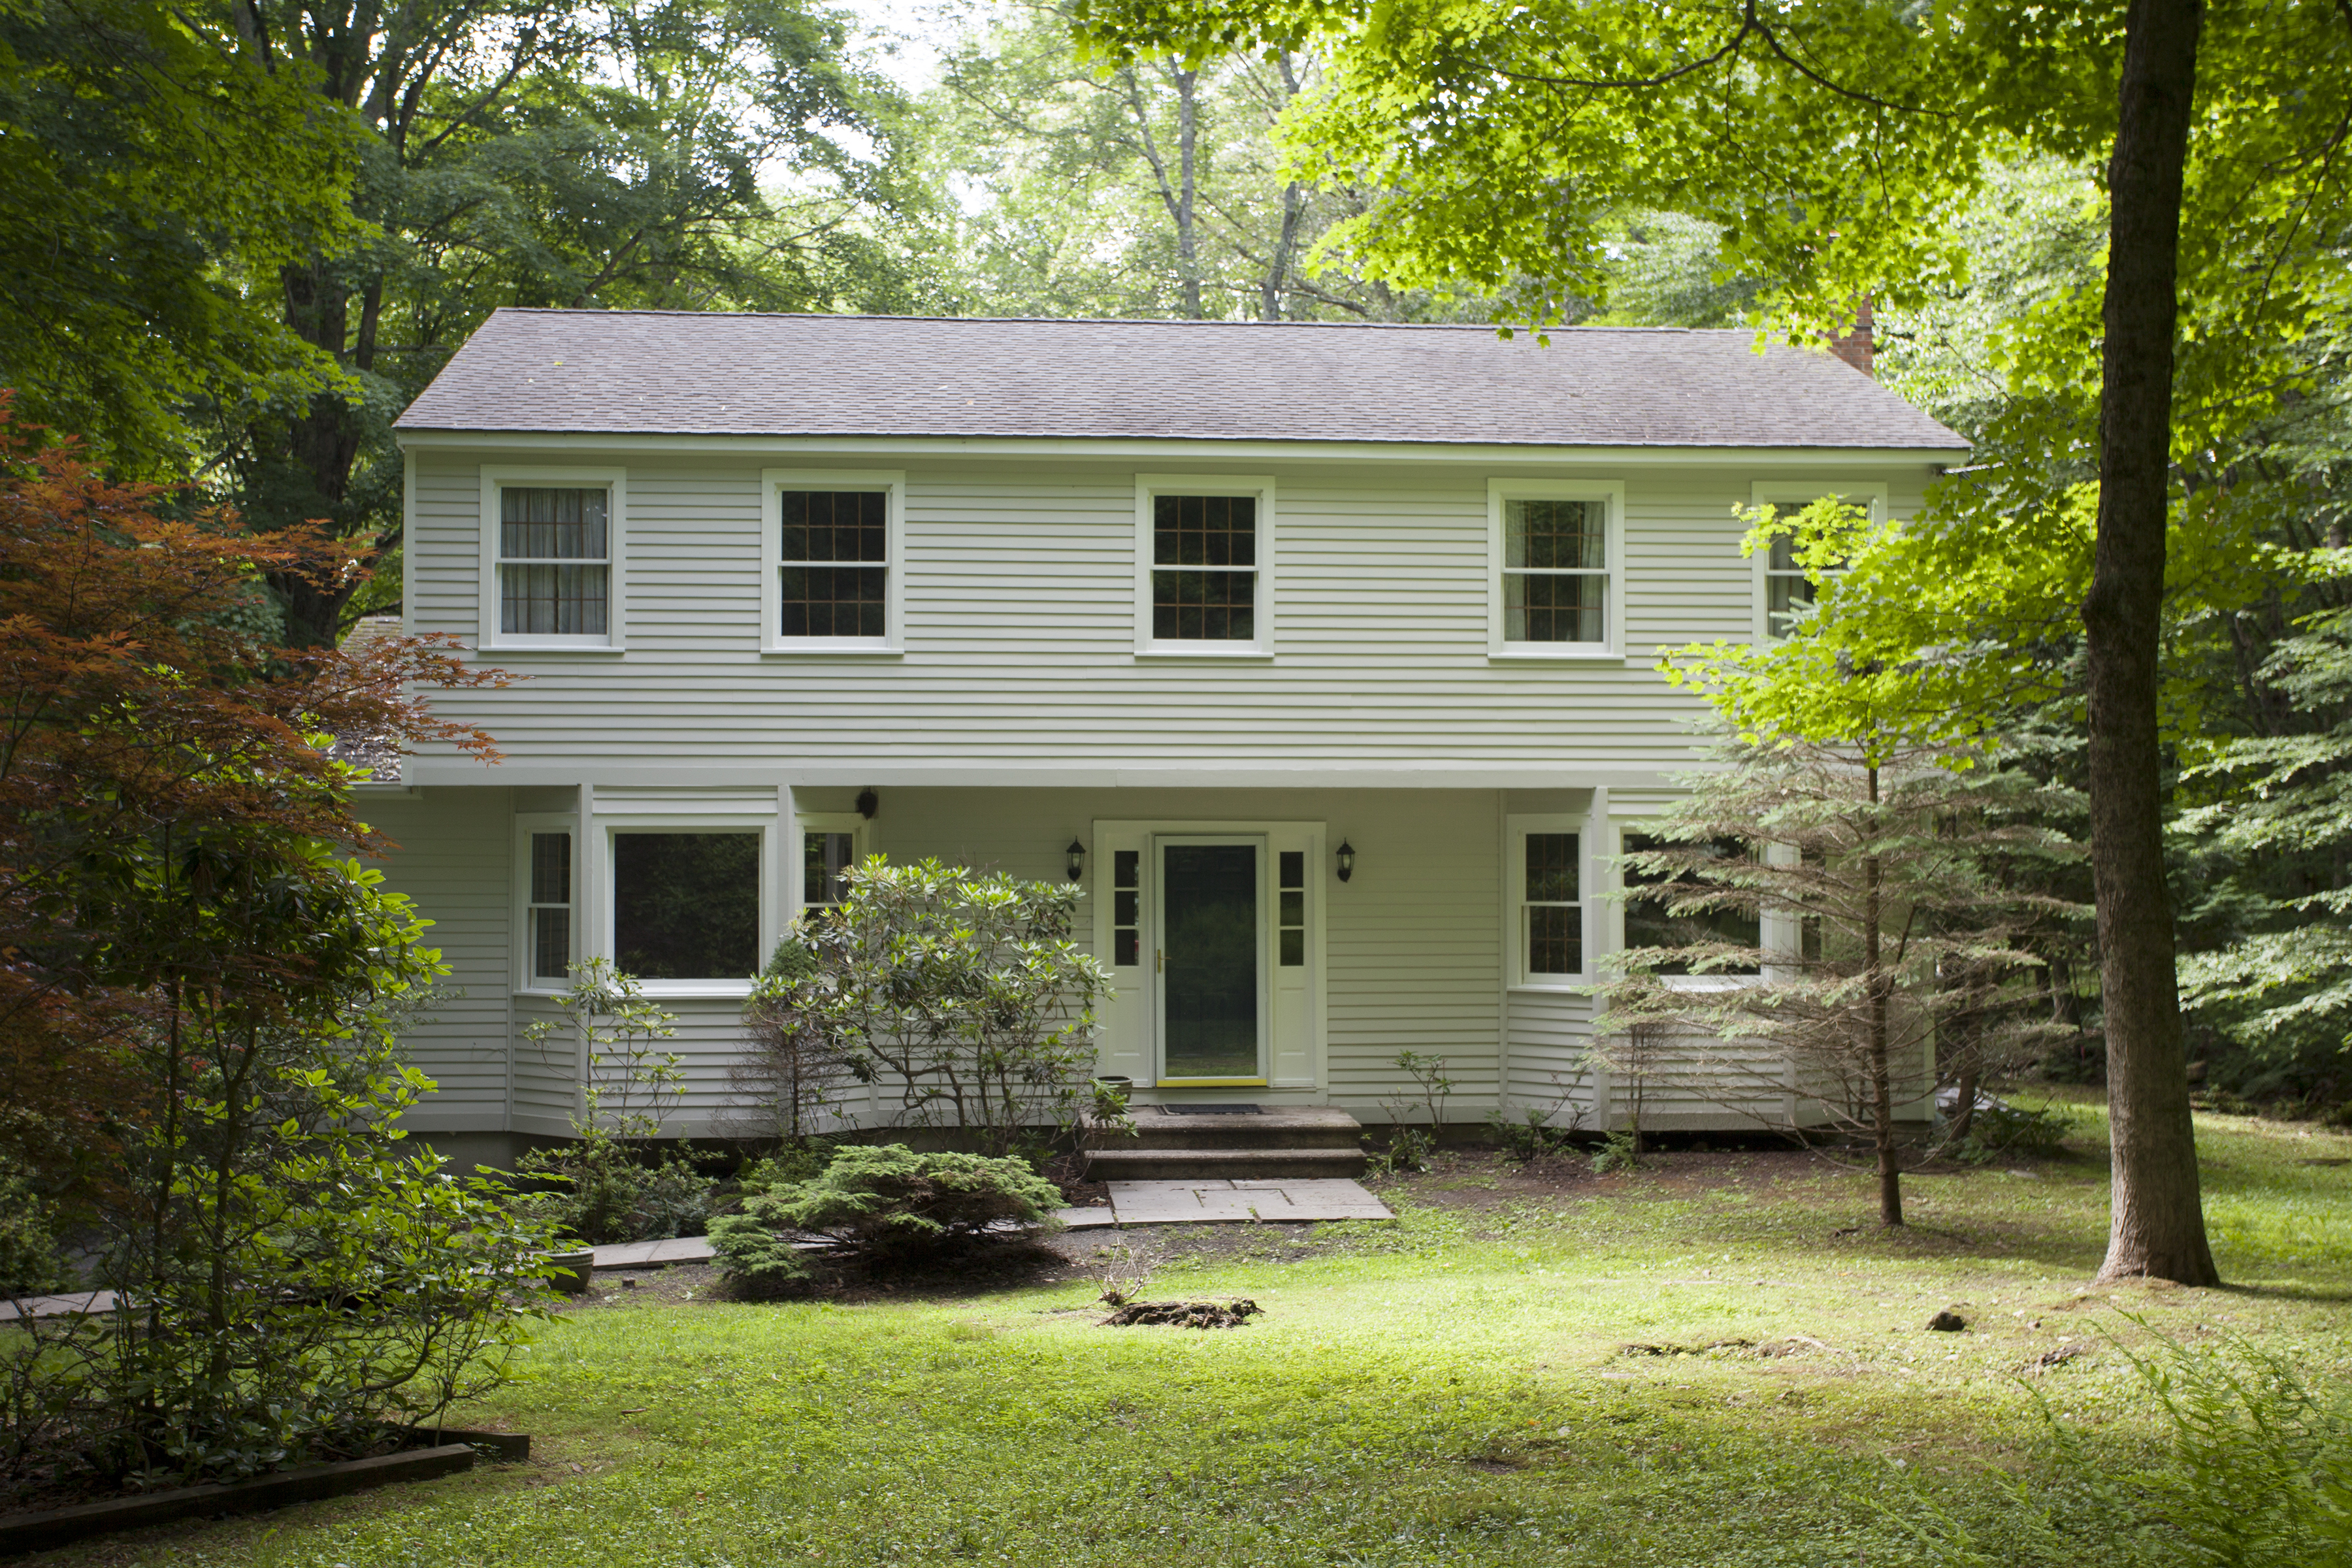 Single Family Home for Sale at Large Washington Colonial 61 West Morris Rd Washington, Connecticut, 06794 United States